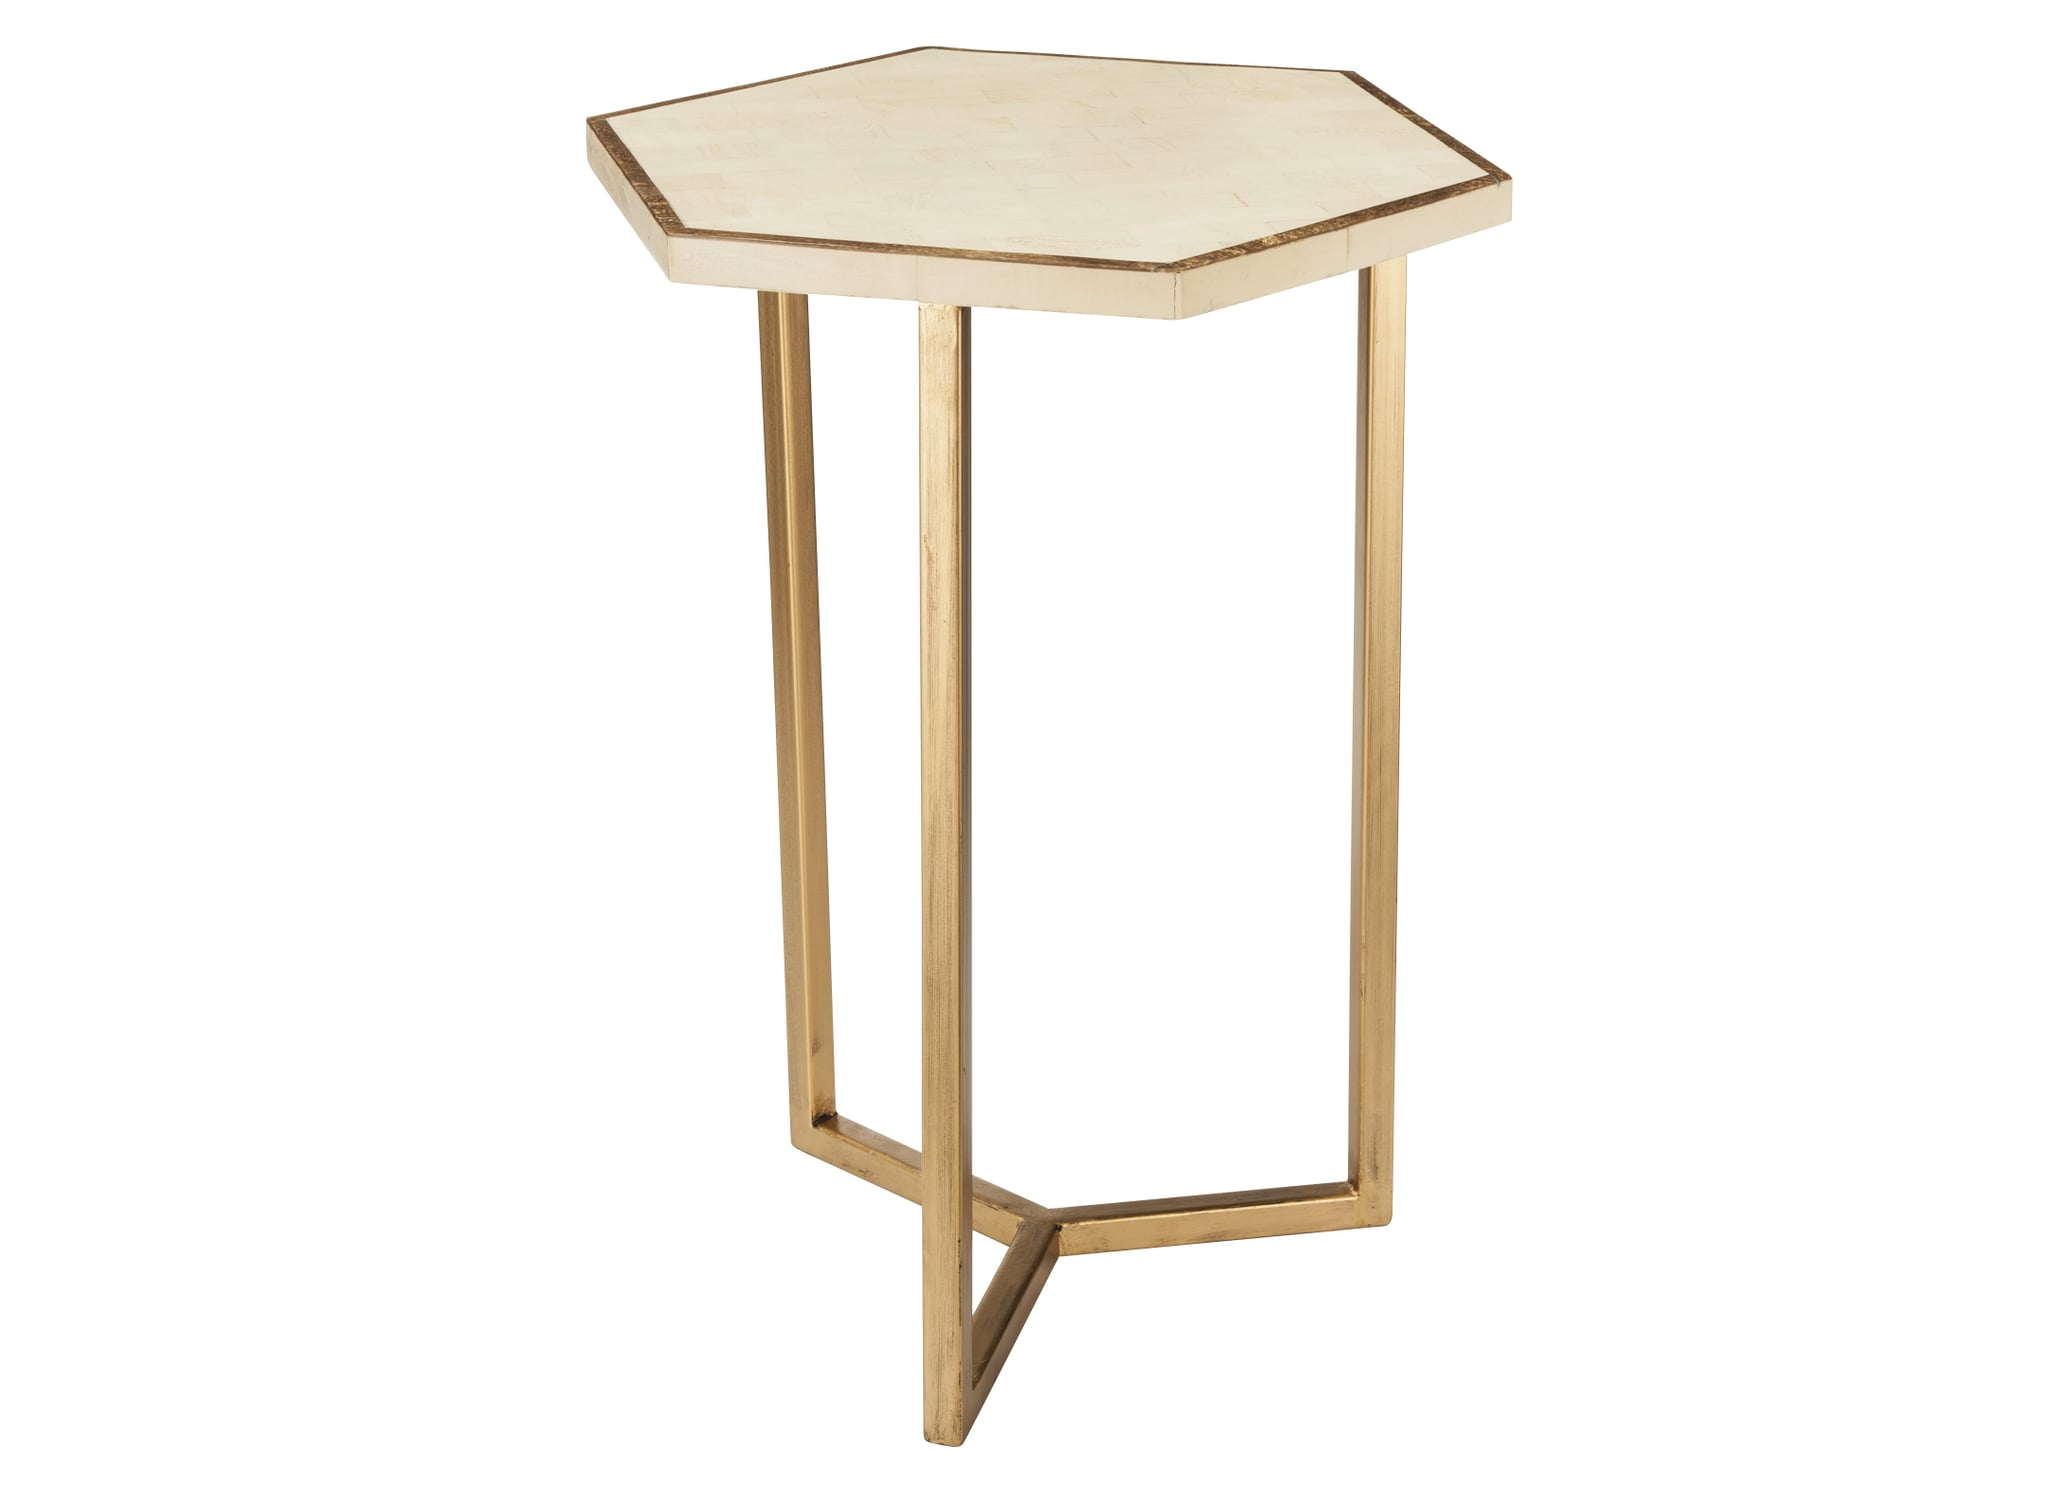 Faux shell makes this table ($70) appear much more expensive than it really is.